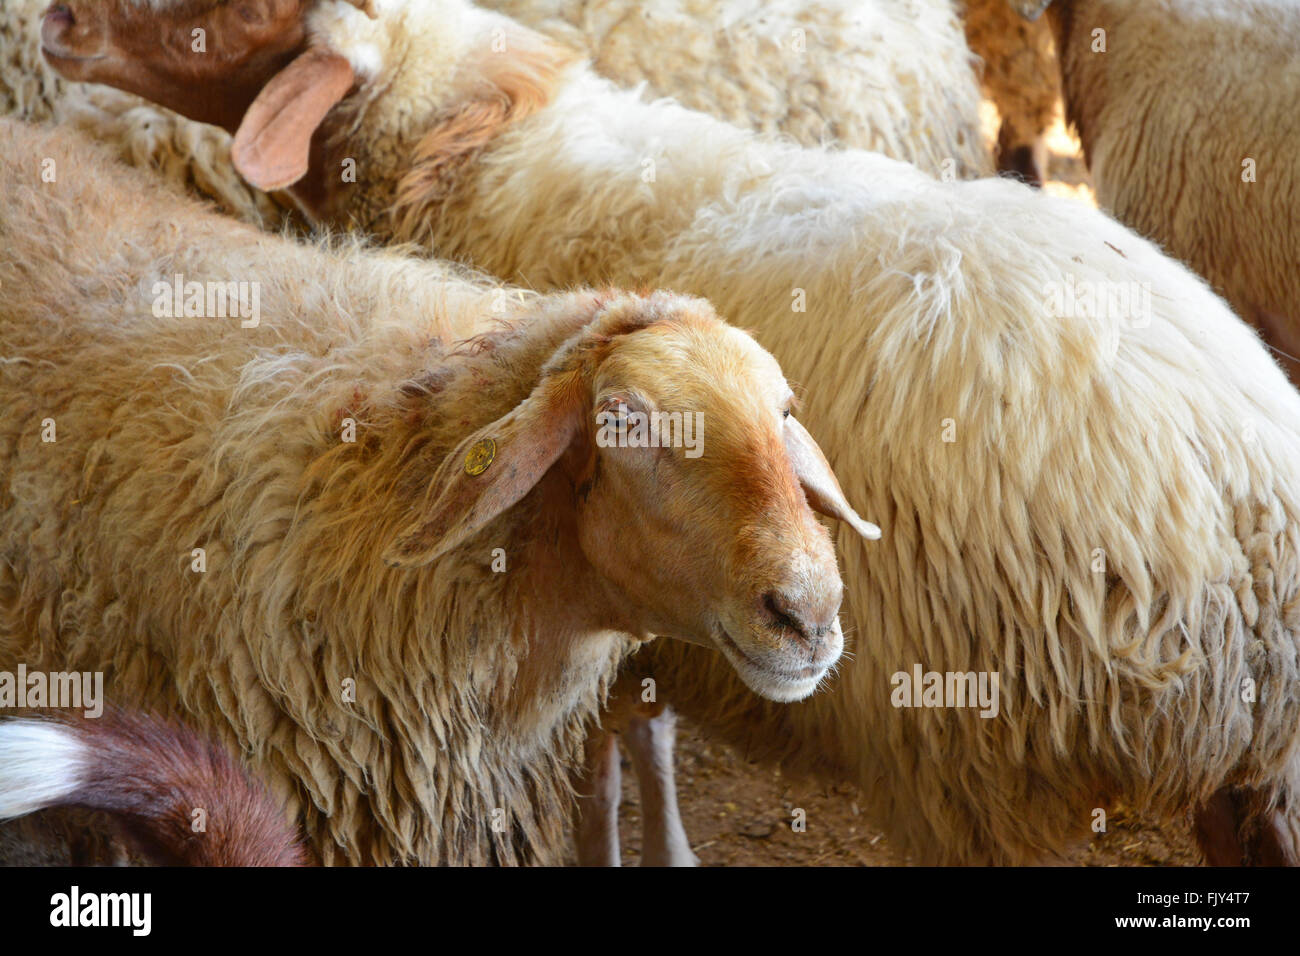 Sheep  in a herd - Stock Image